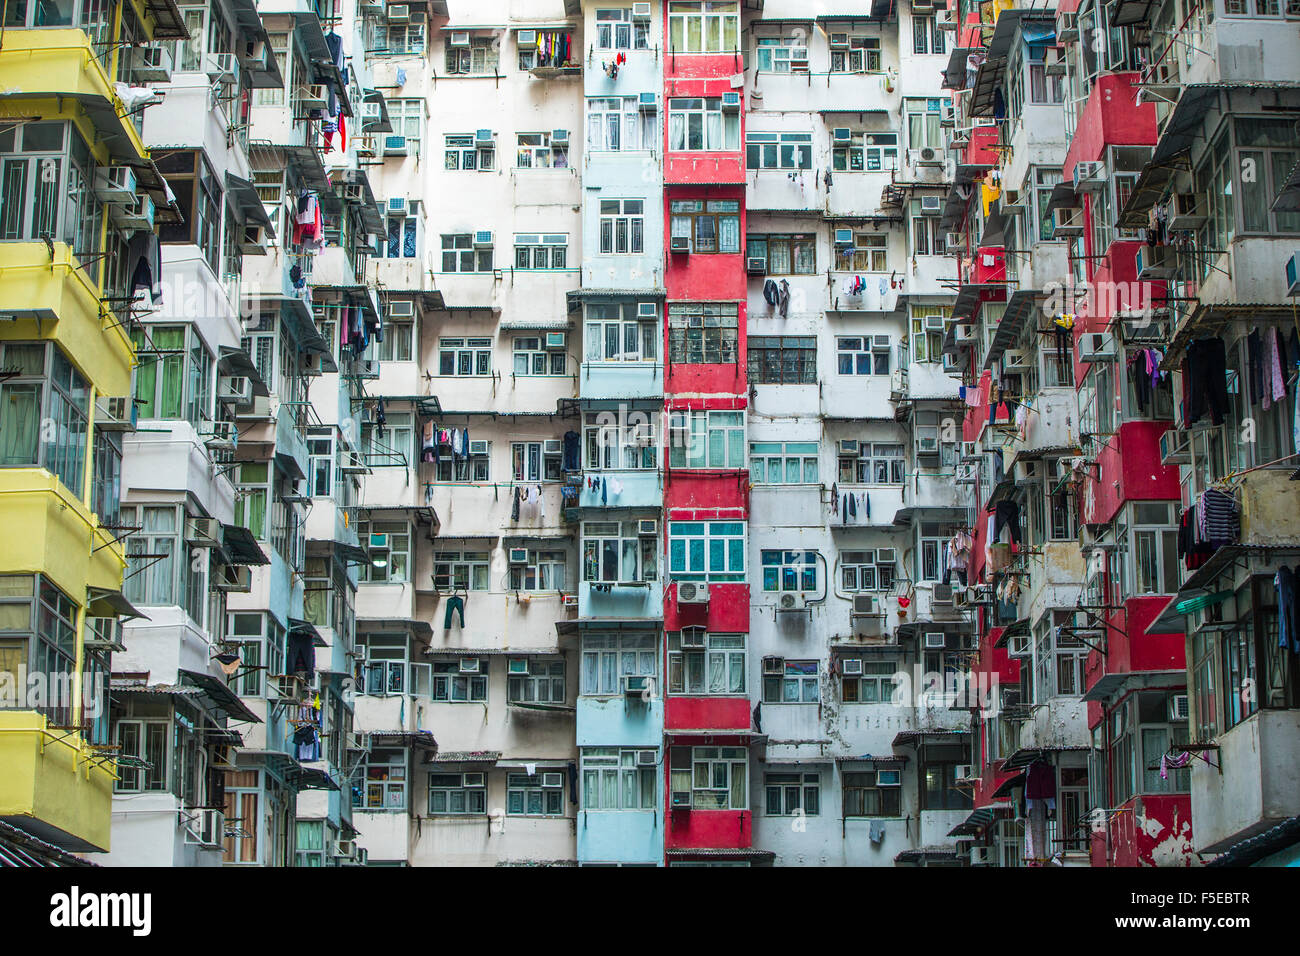 High Density Apartment Block Hong Kong China Asia Stock Photo Royalty Free Image 89441767